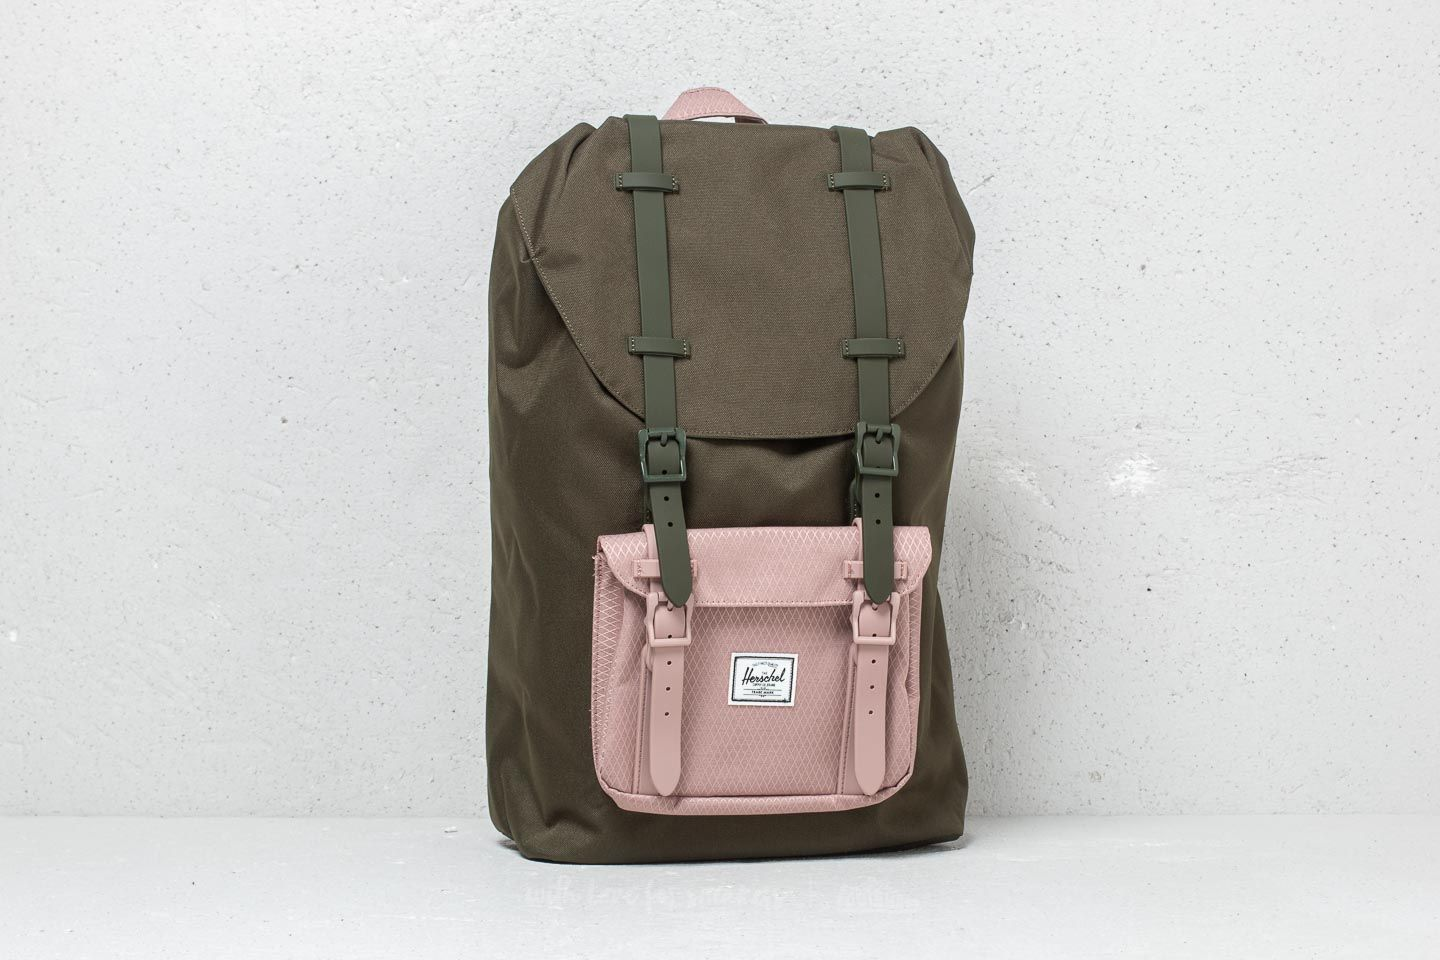 be5d3f3f24 Herschel Supply Co. Lil America Mid Volume Backpack Forest Night  Ash Rose